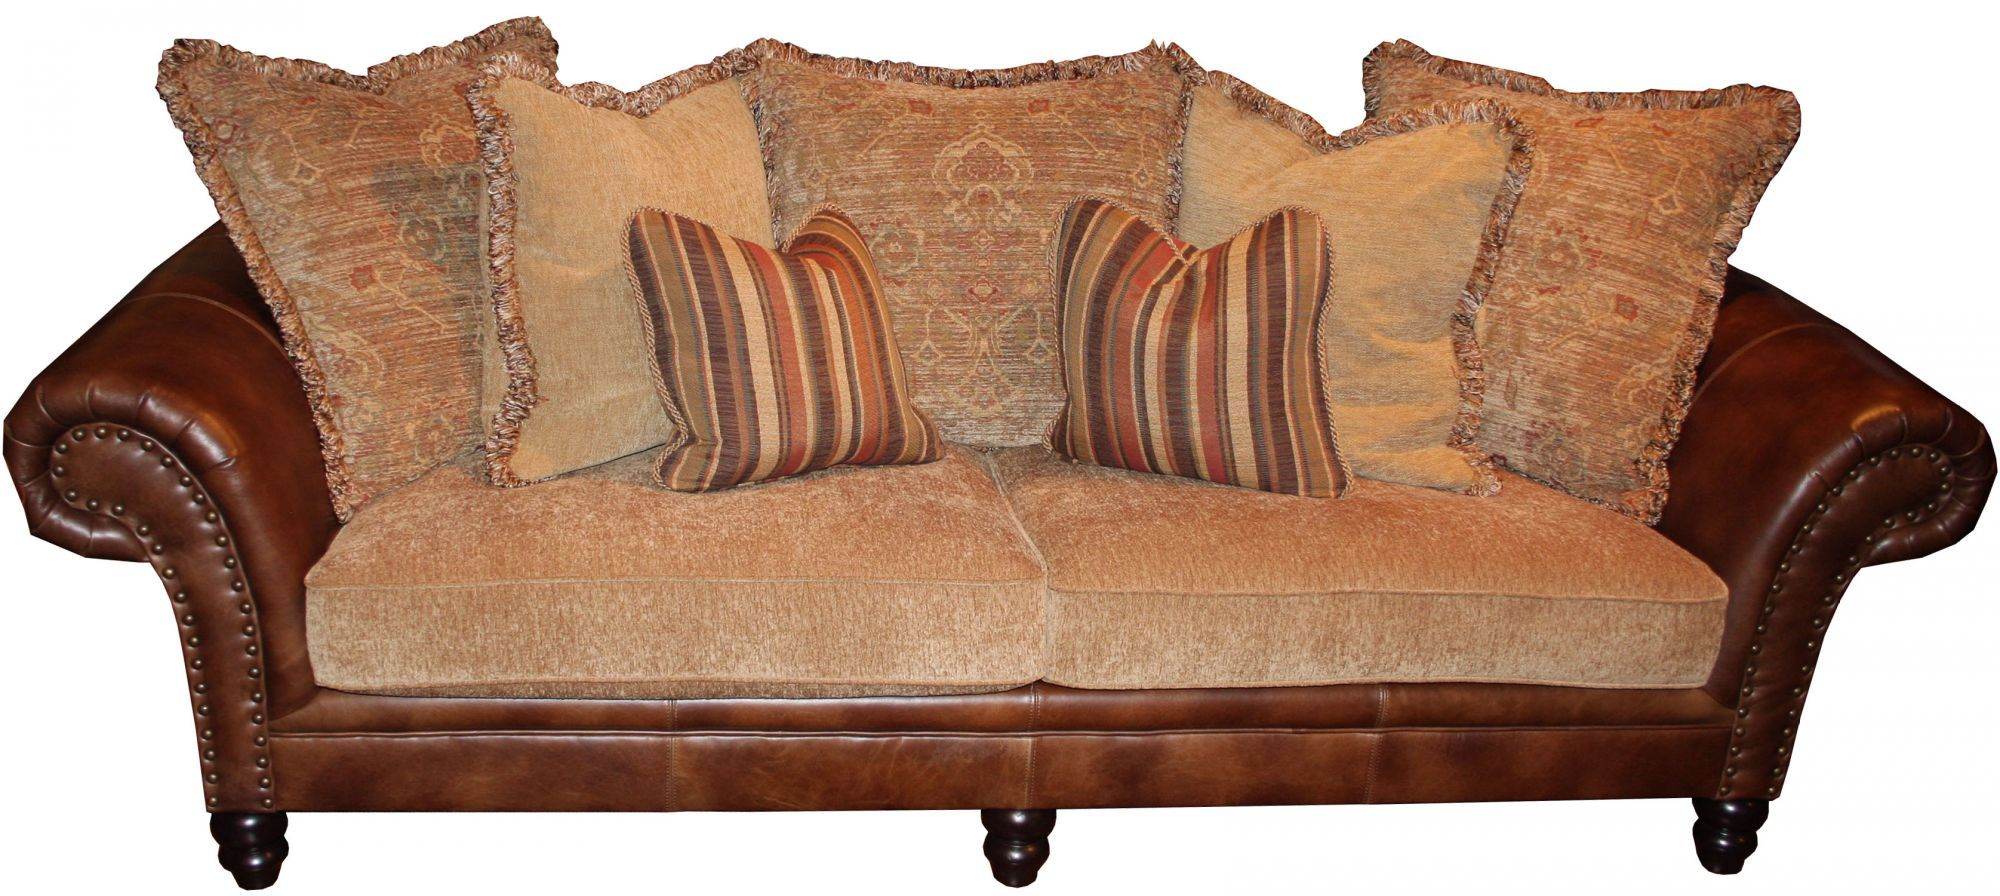 bernhardt sofa leather and fabric 8 piece sectional barringer comforts of home